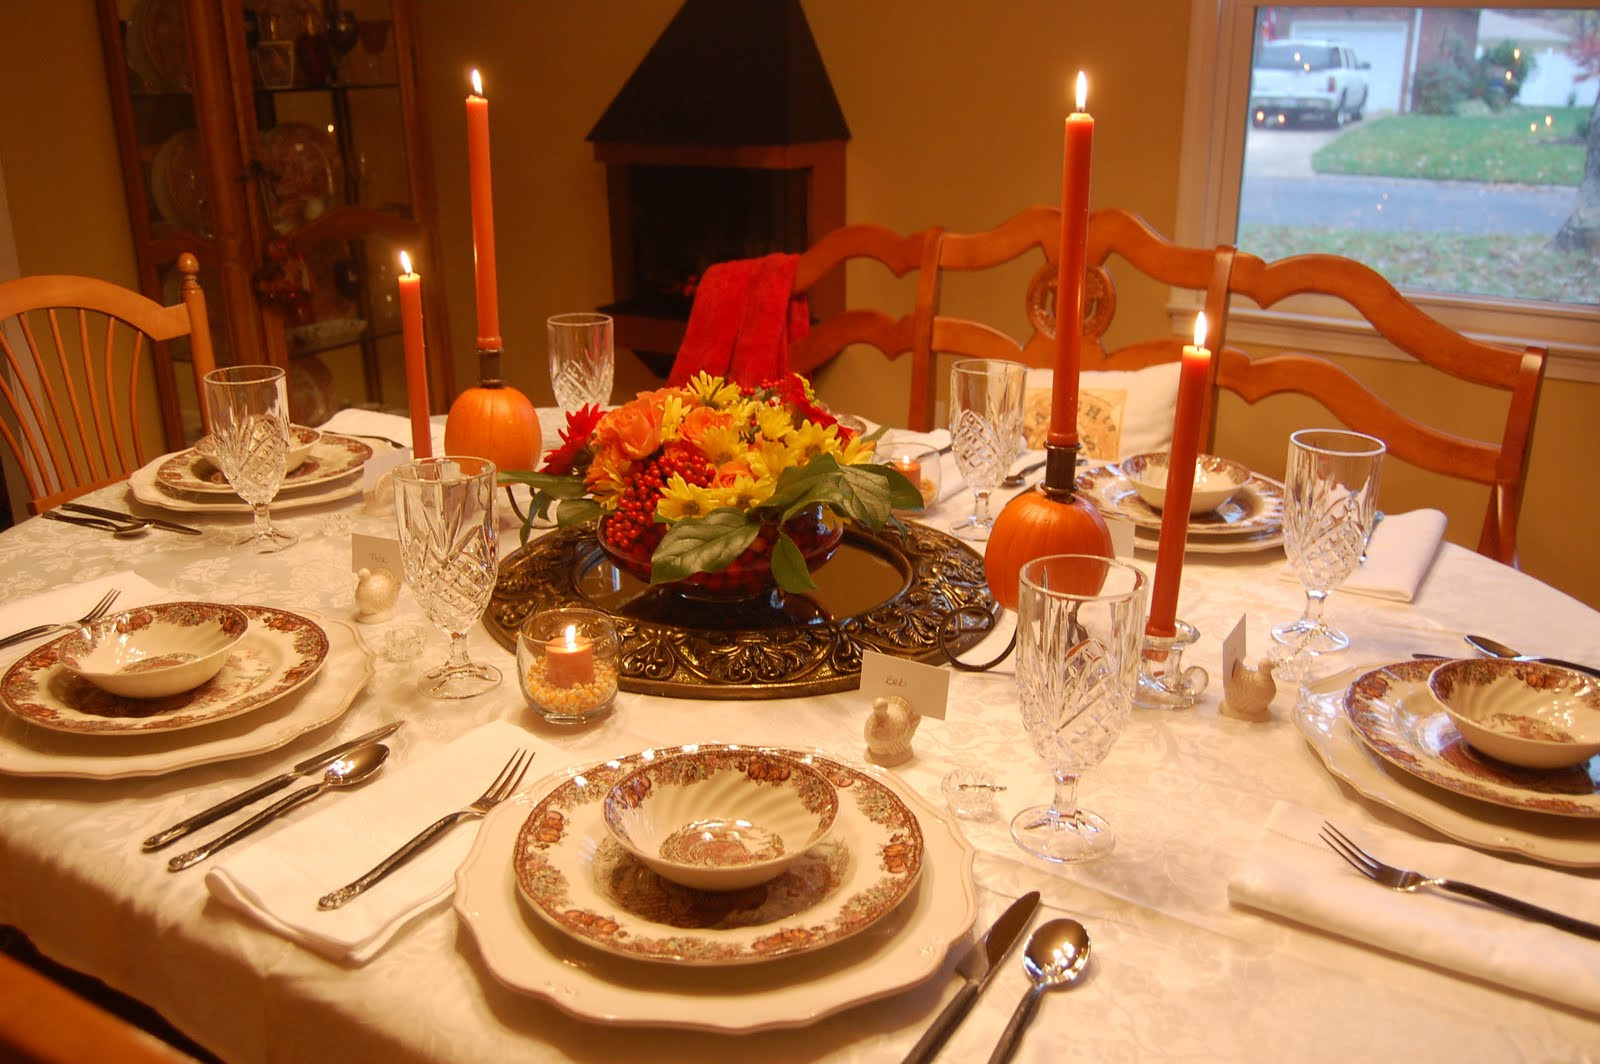 Thanksgiving Dinner Table Decorations  The Knife is Always Right How to Set the Perfect